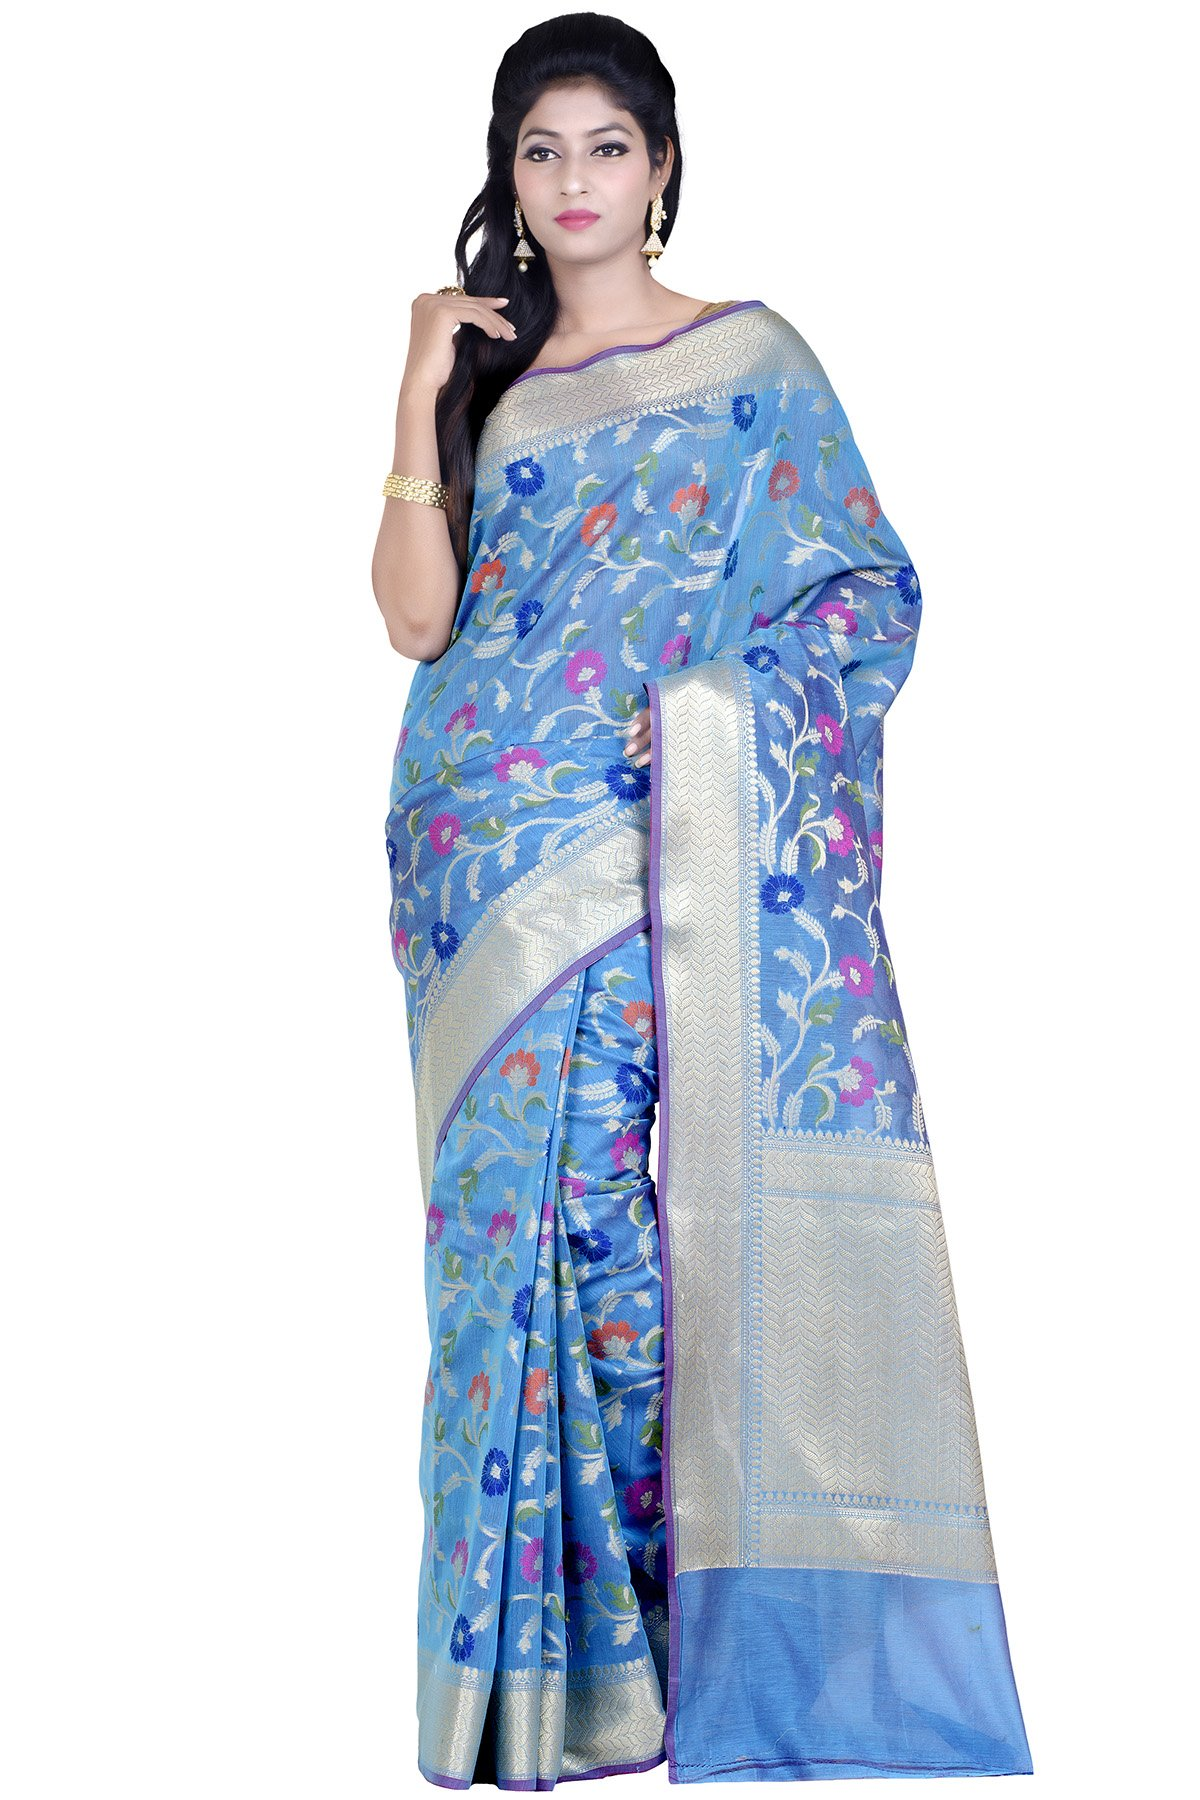 Chandrakala Women's Blue Mercerize Cotton Banarasi Saree with unstitched Blousepiece.